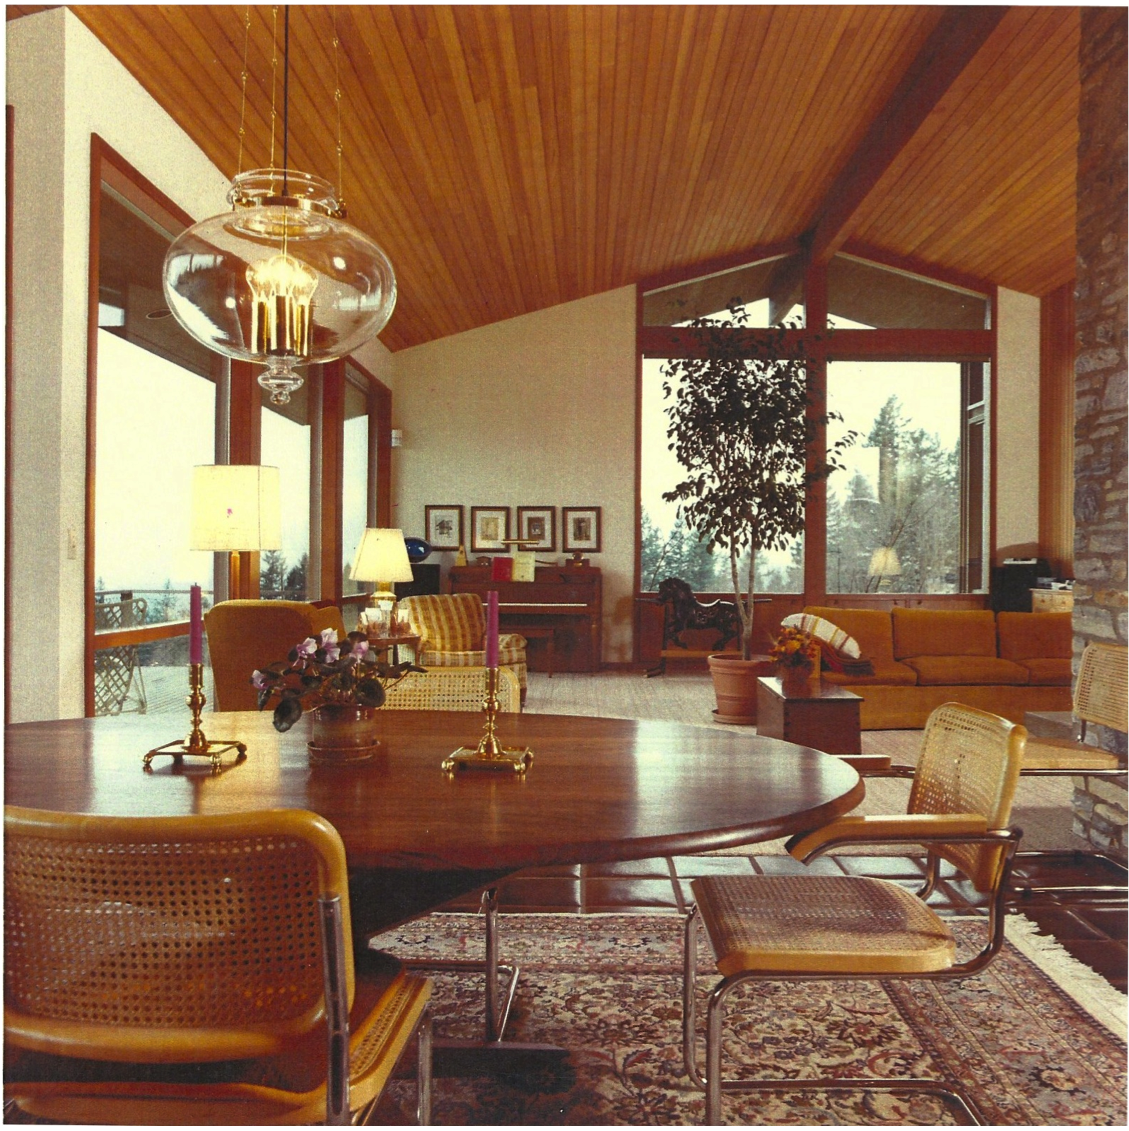 Interior of the papworth house c 1980 the home was featured on restore oregons 2014 mid century modern belluschi house tour